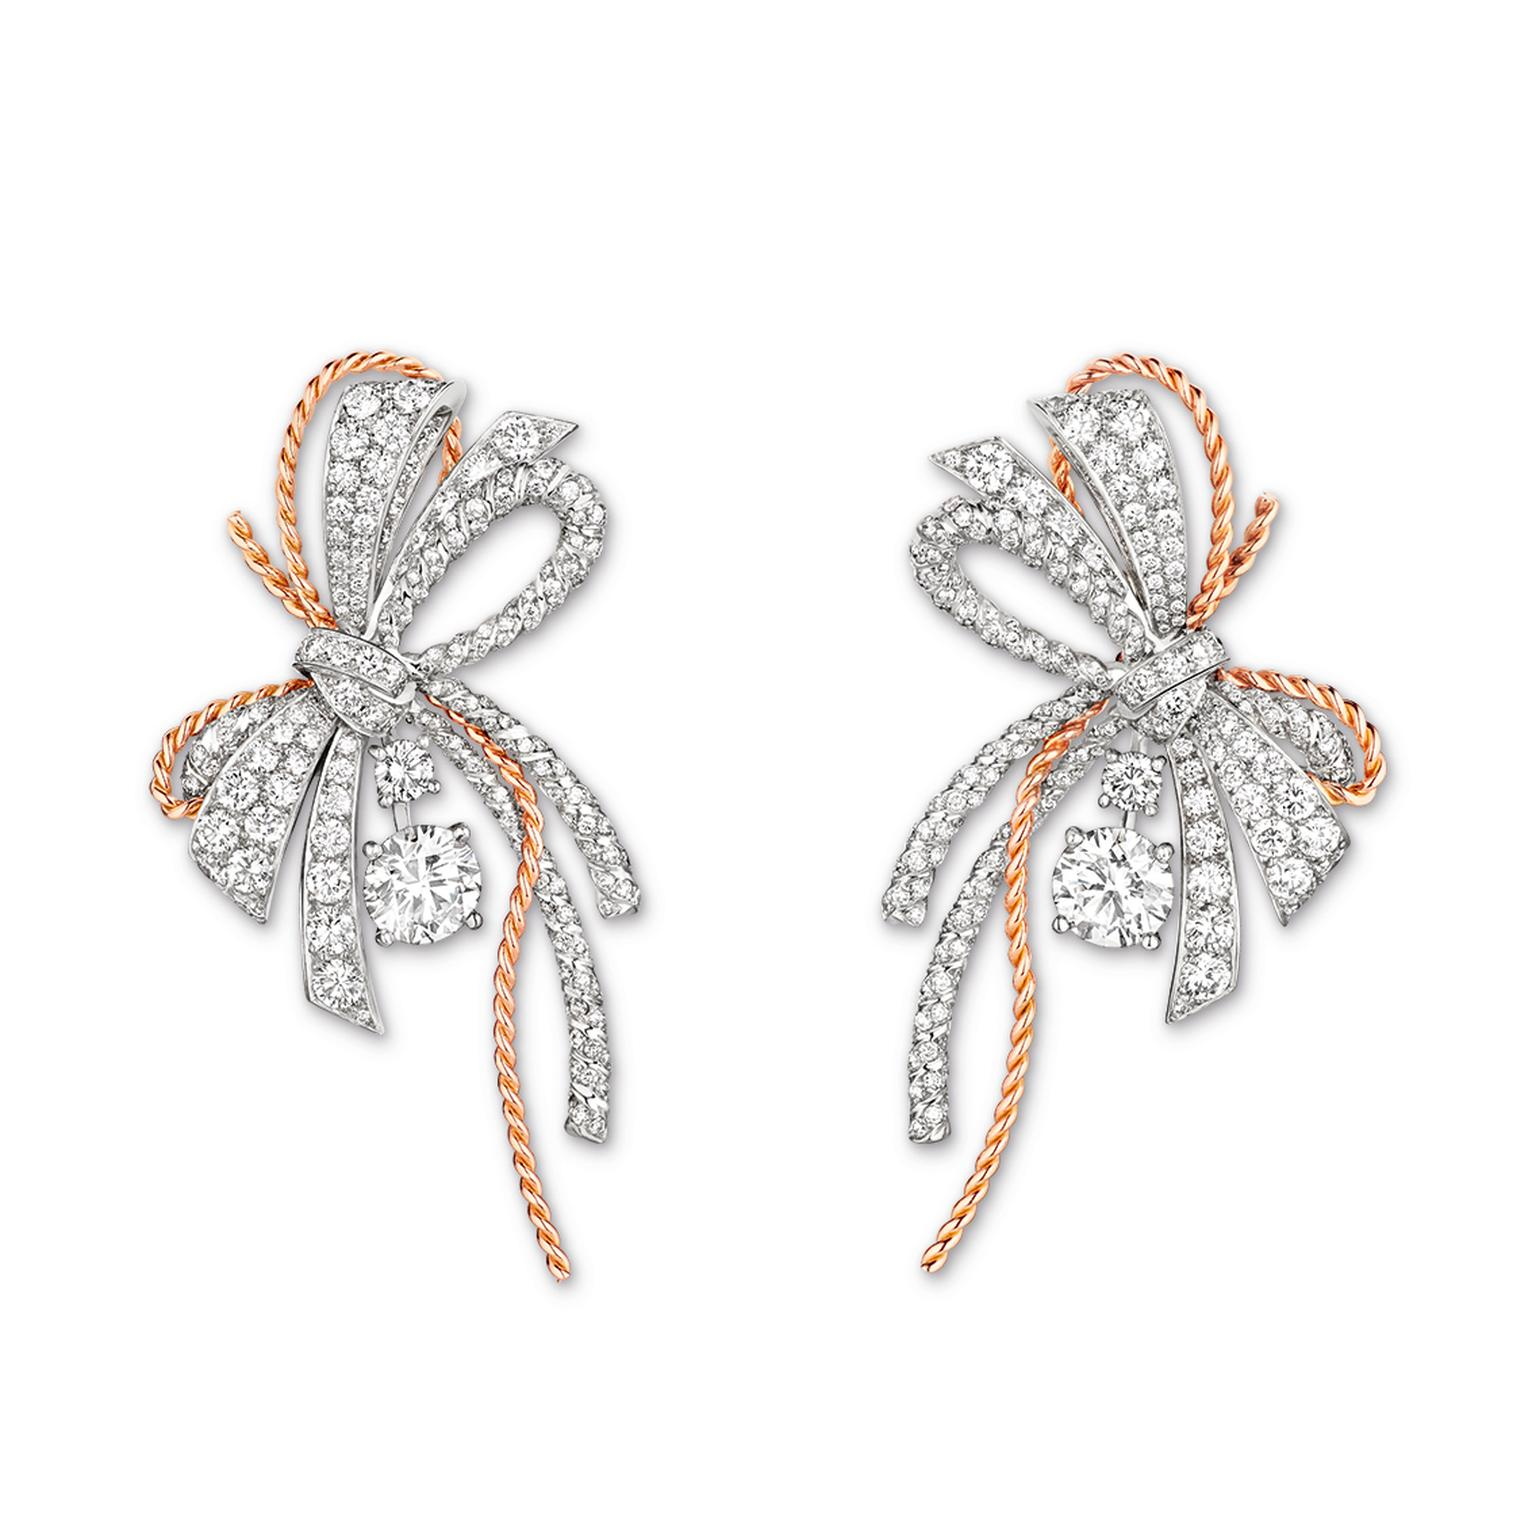 Insolence high jewellery earrings